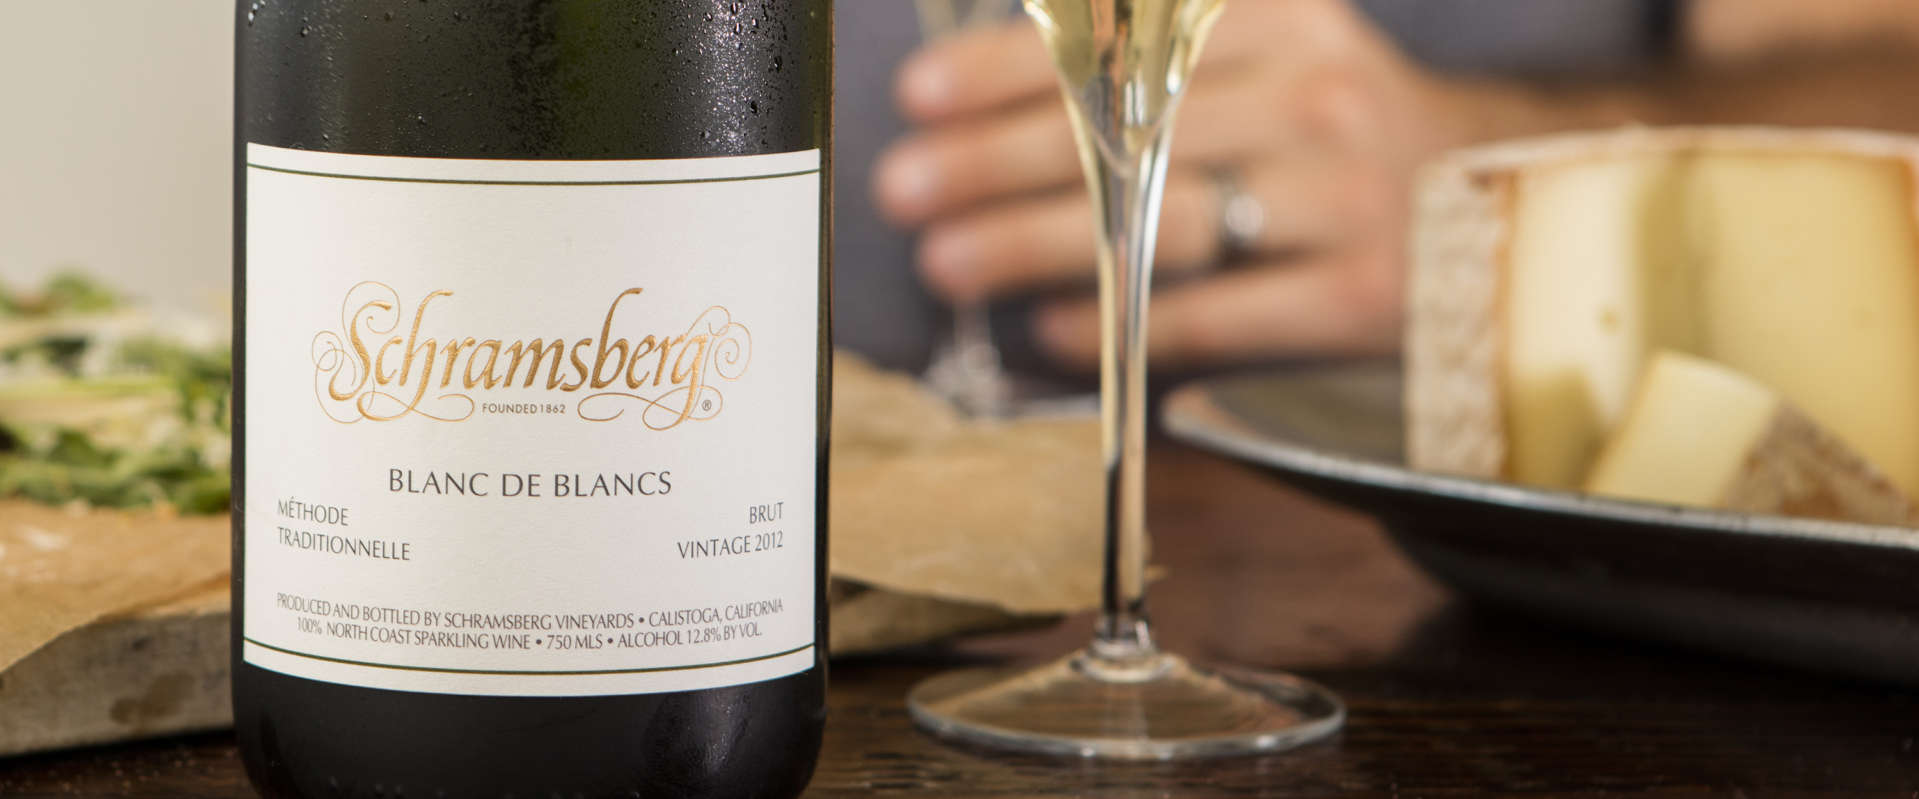 Schramsberg   . an iconic Napa sparkling wine producer, makes a delicious Blanc de Blancs (100% Chardonnay). elegant and savory with a fine and delicate mousse.   Image courtesy of Schramsberg